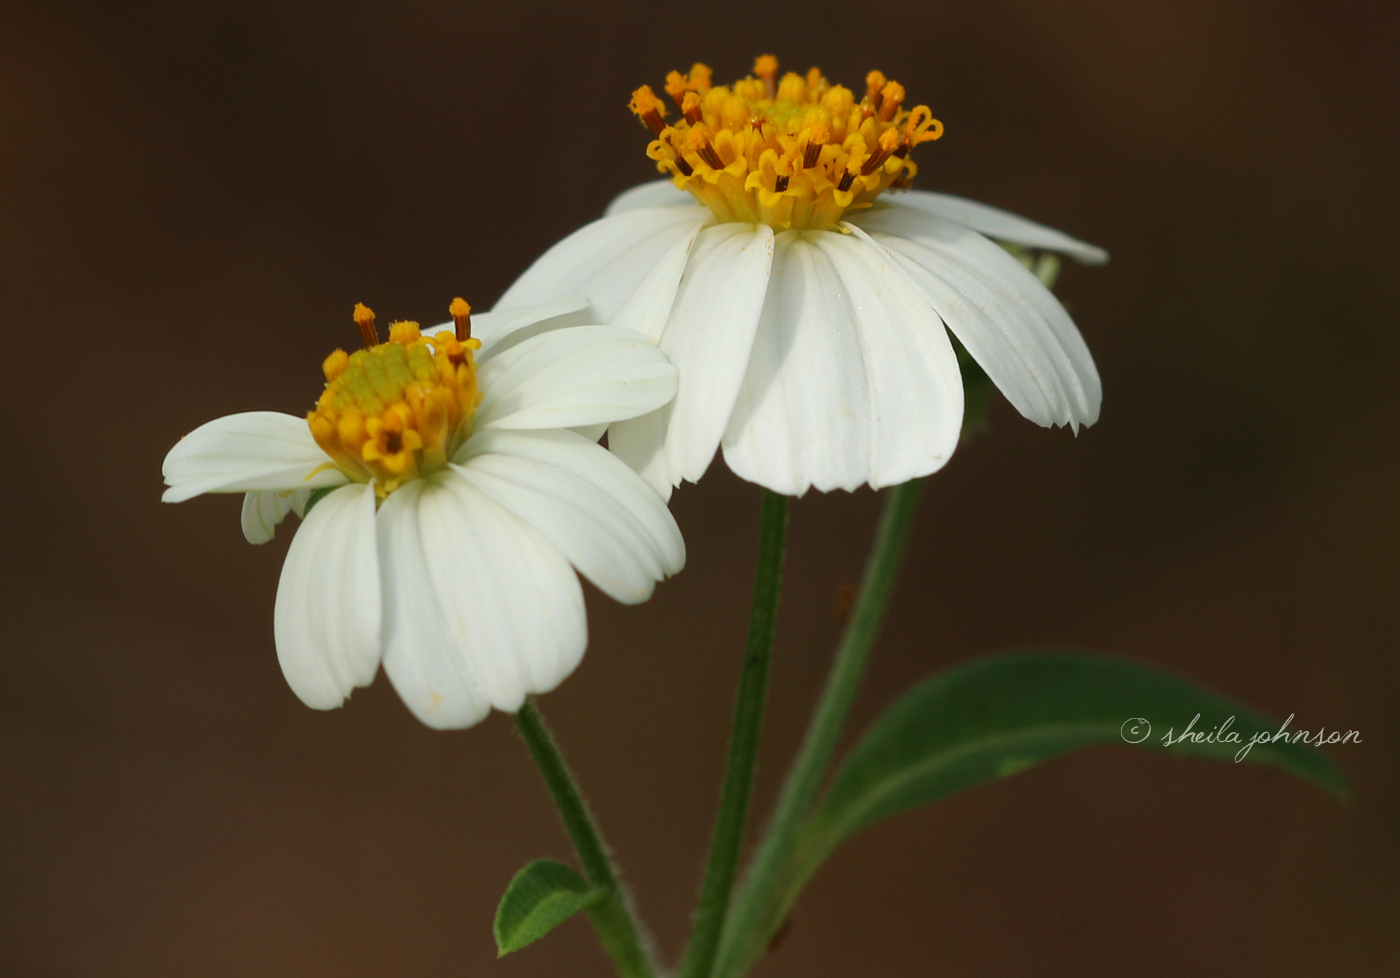 This Is Bidens Alba, Commonly Known As Spanish Needles. Though It Looks Like A Daisy (And I Call Them Daisies), They're Actually In The Aster Family Of Flowers.